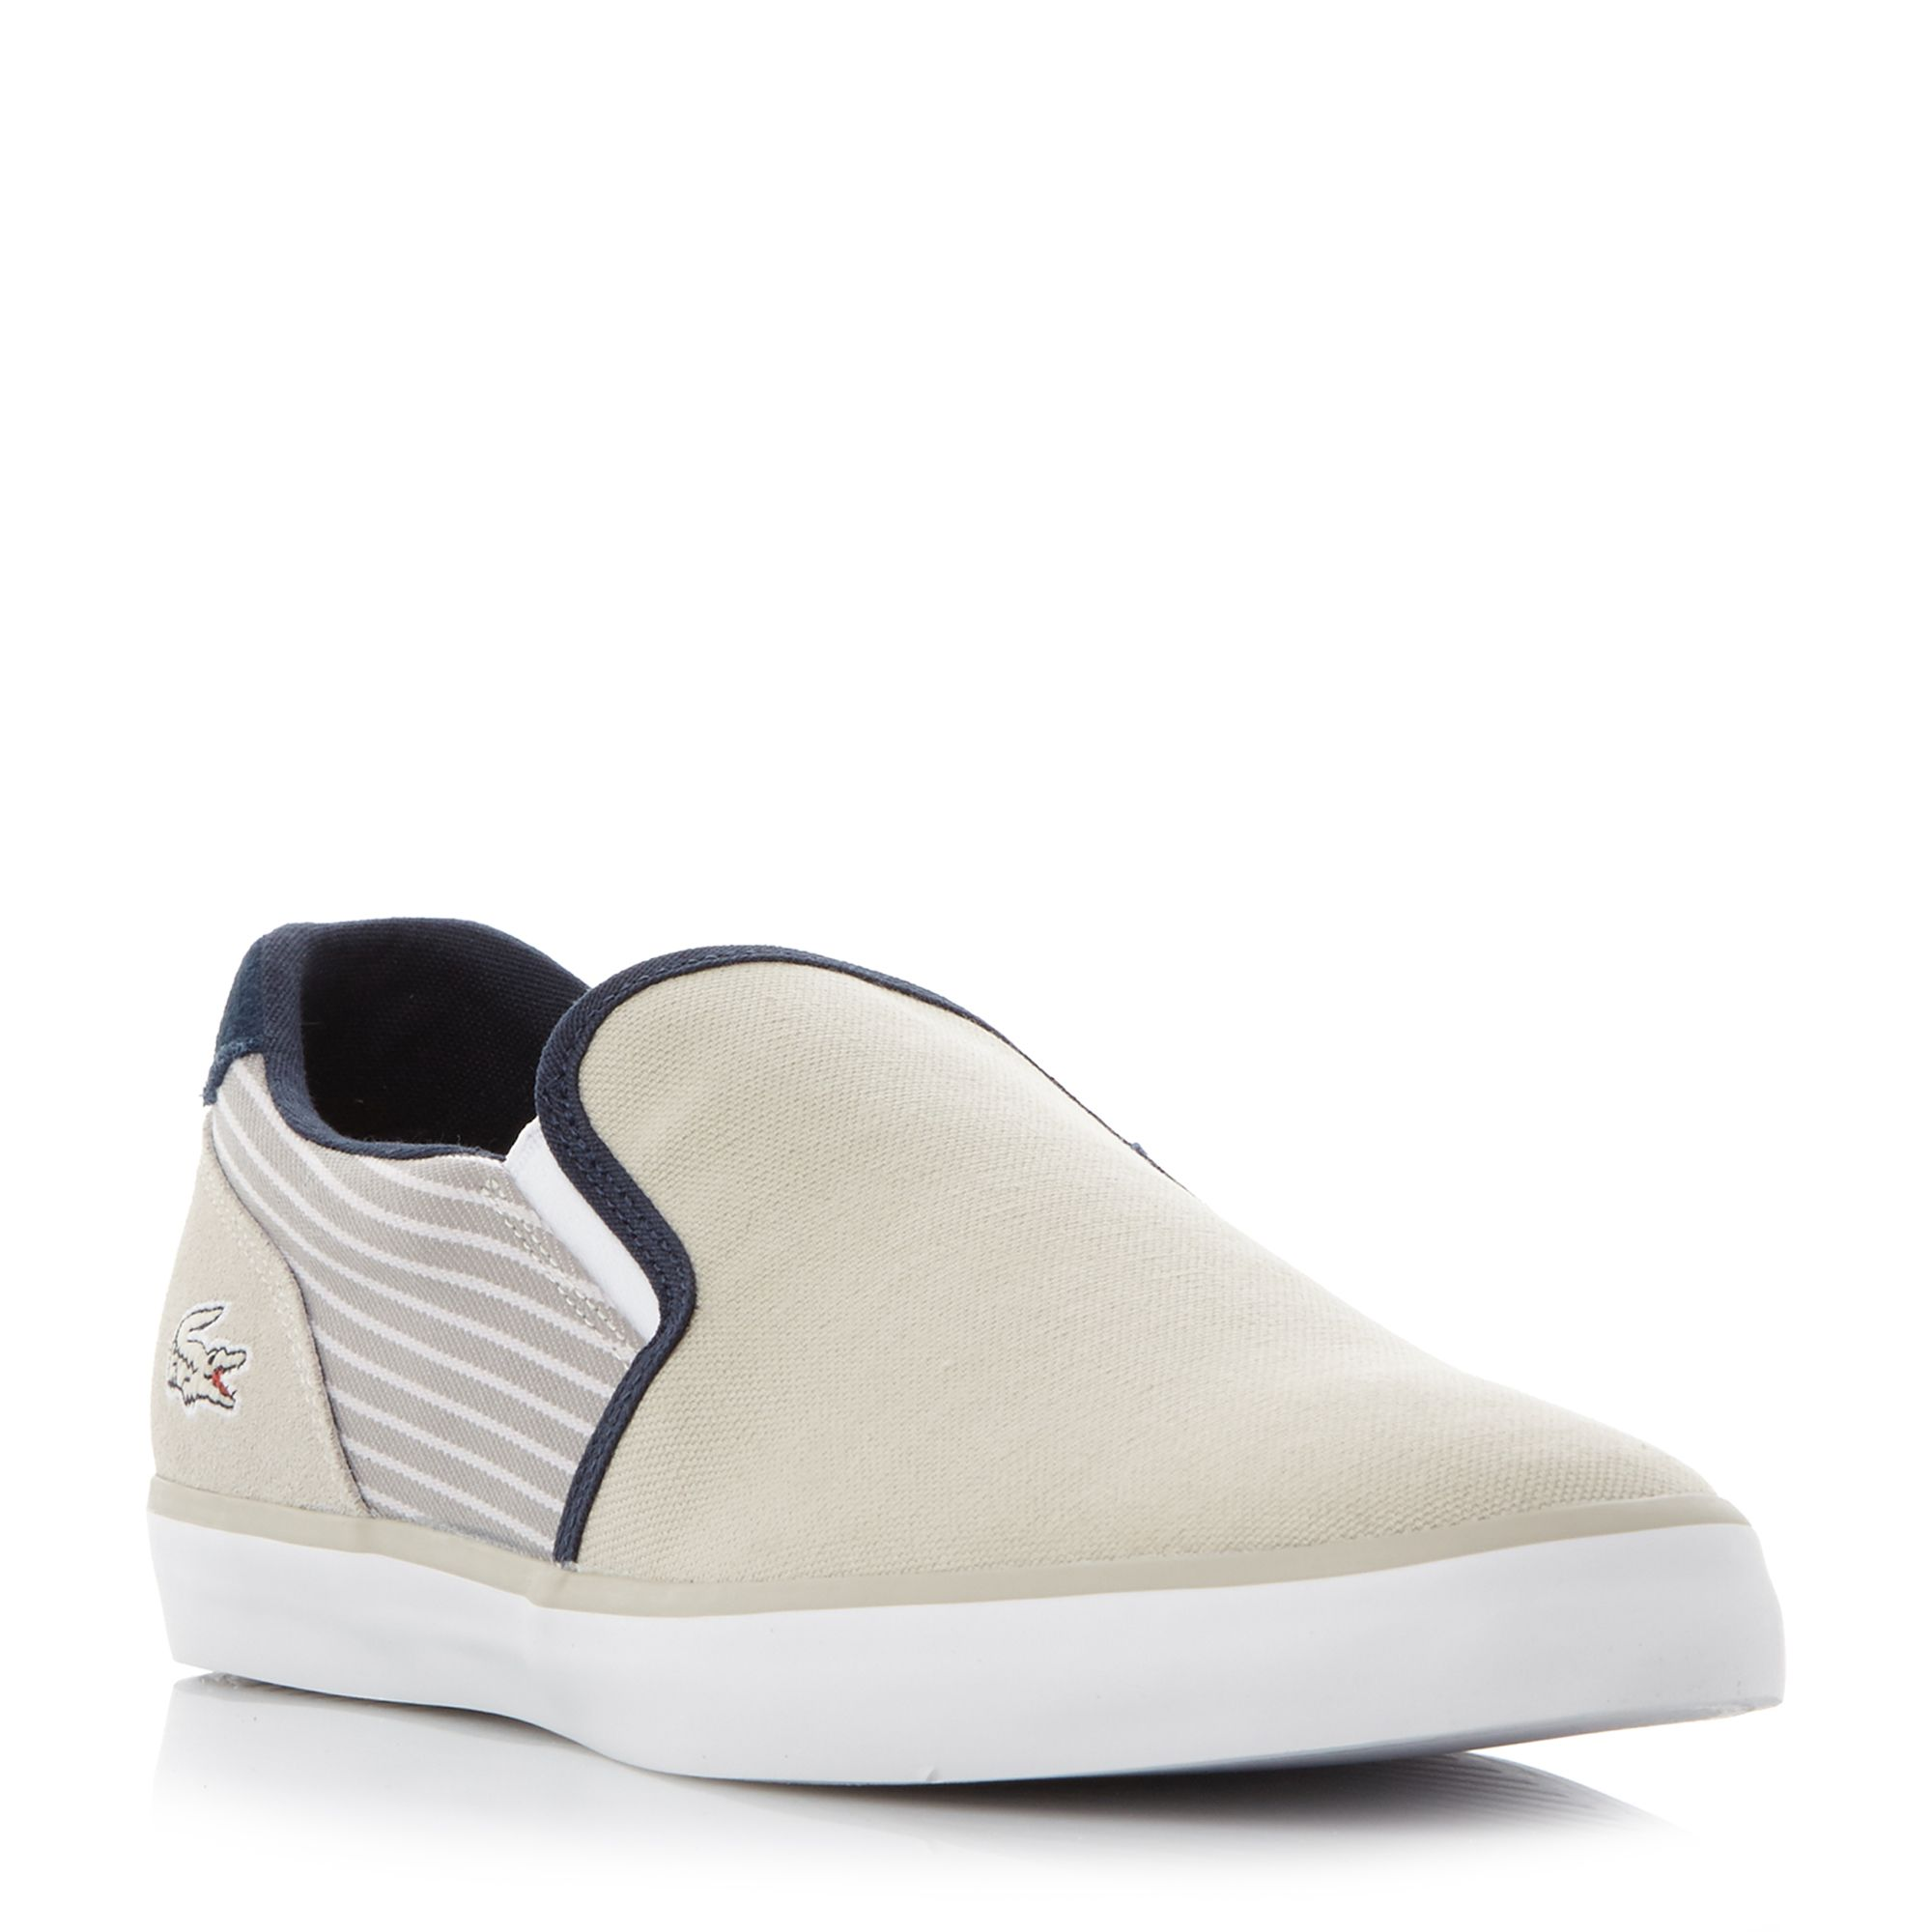 Jouer Slip On Striped Quarter Trainers by Lacoste